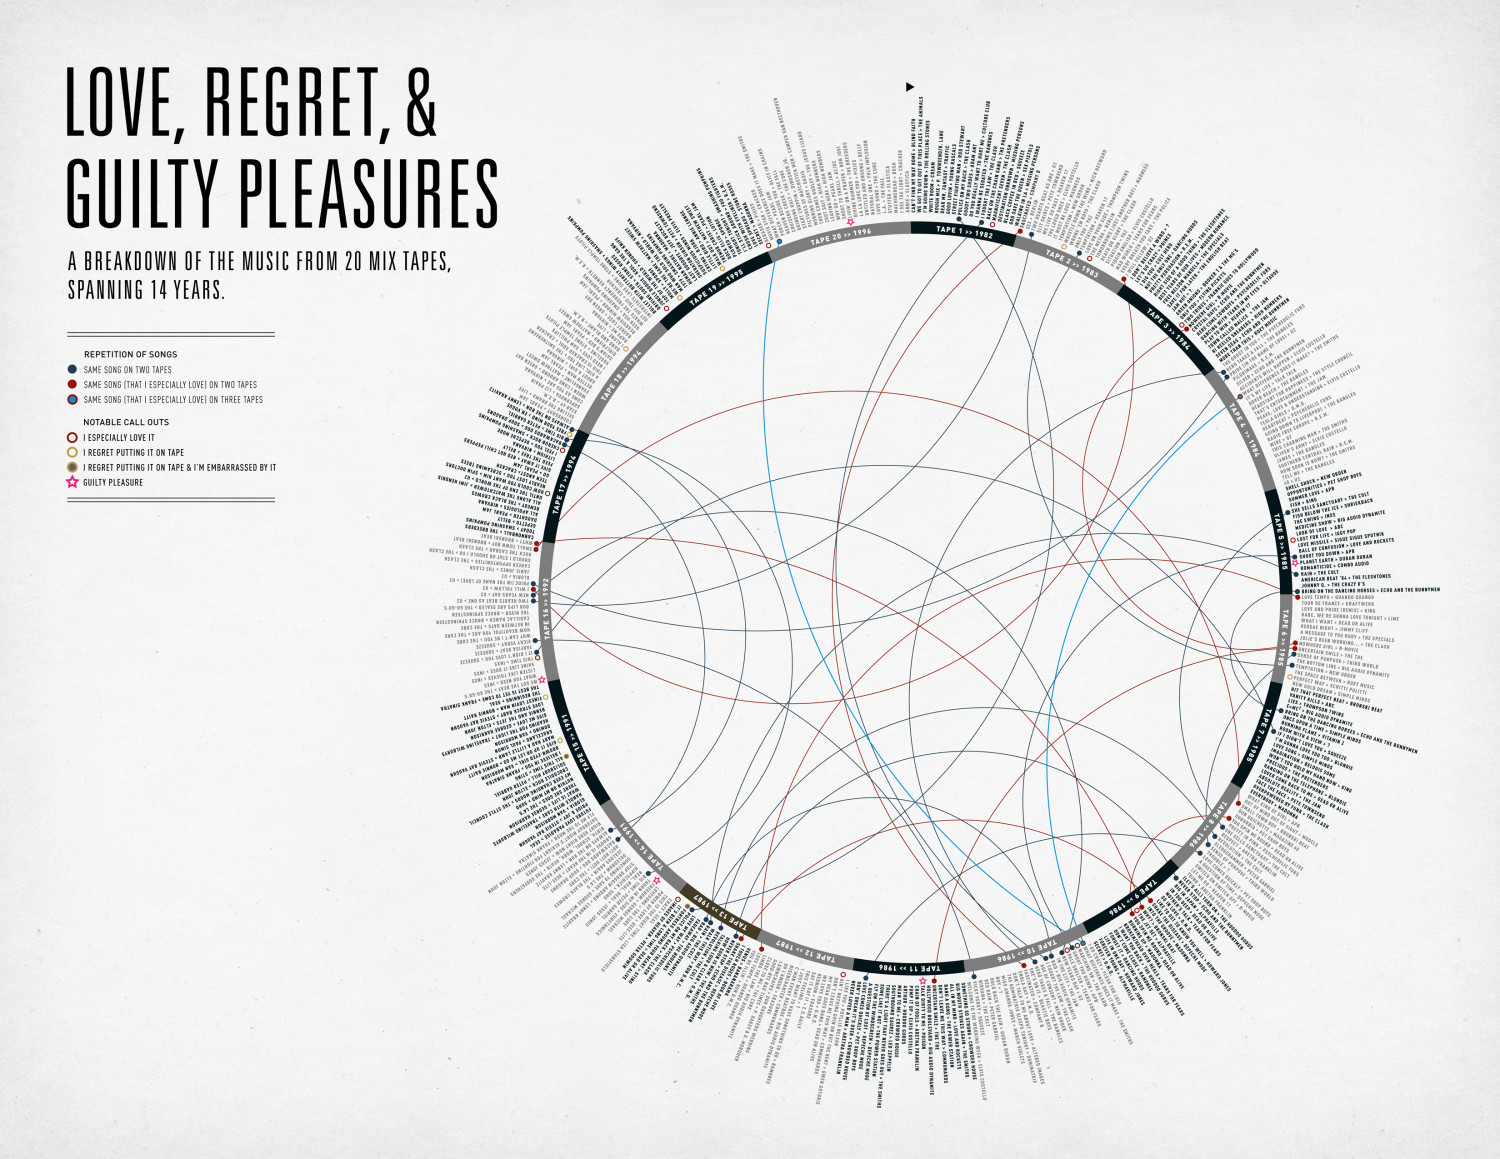 Love, Regret & Guilty Pleasures Infographic